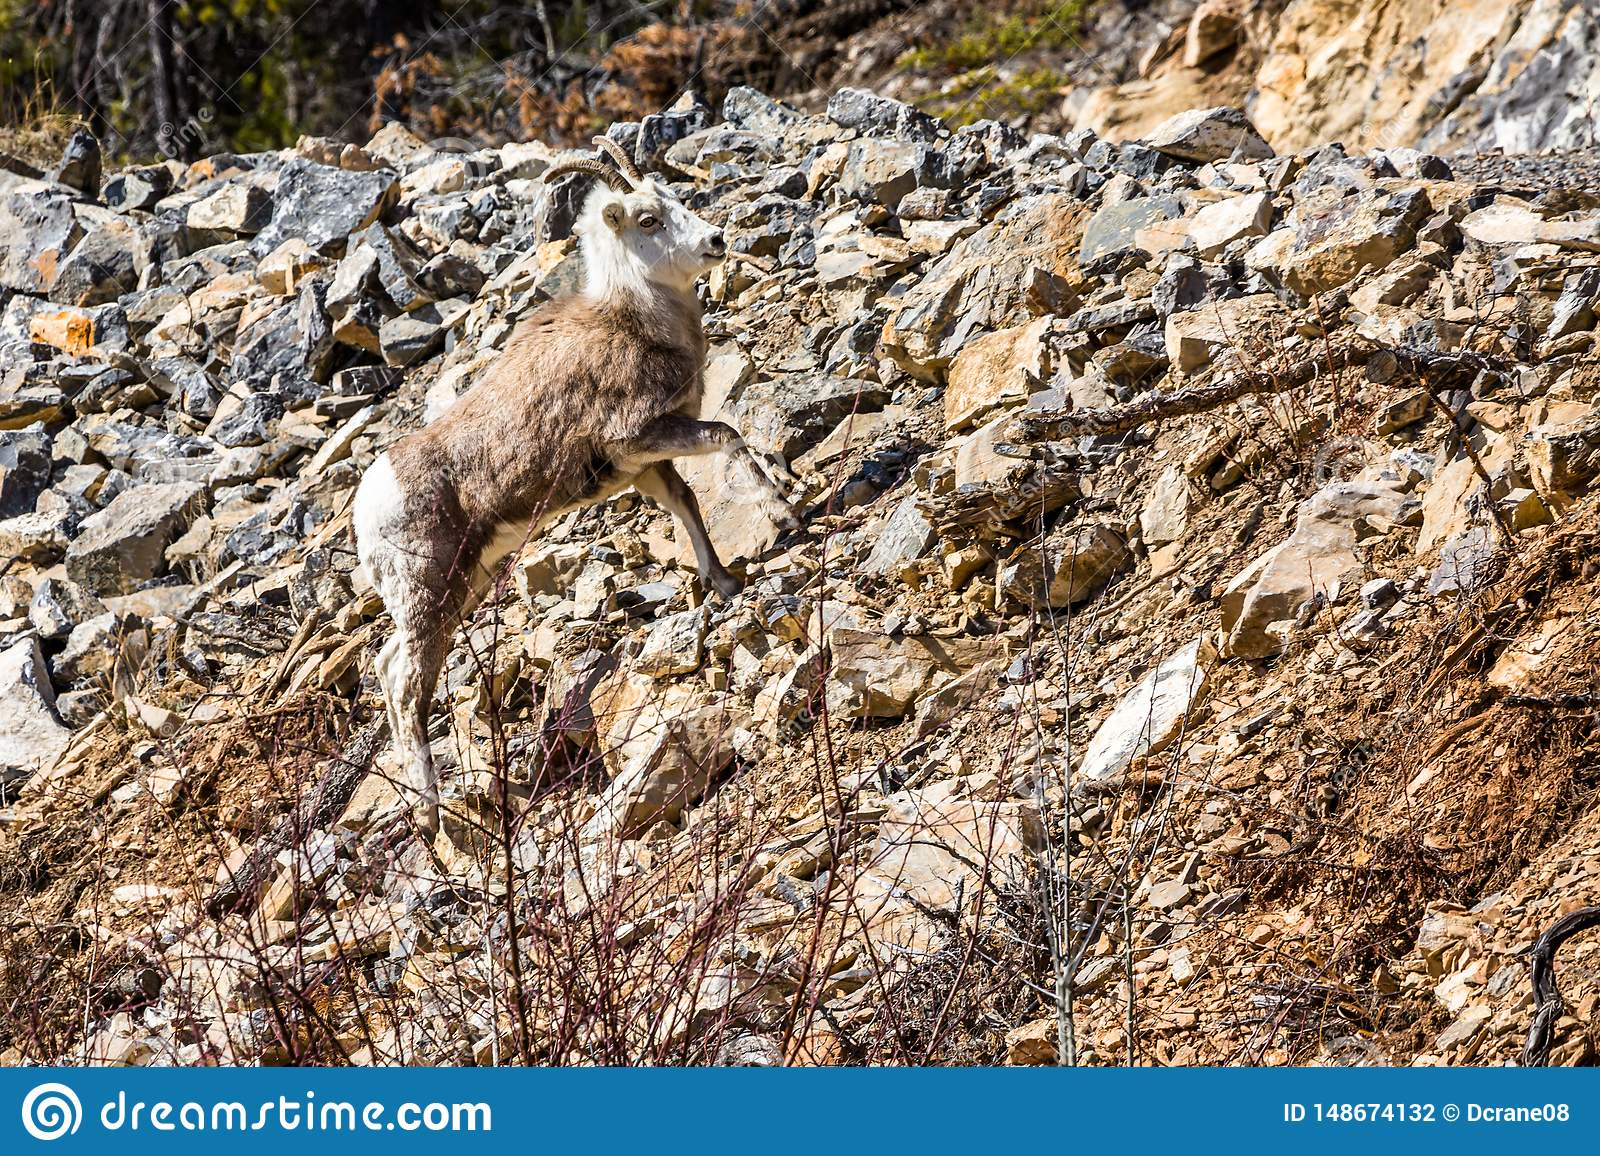 Stone Sheep ewe on steep hillside of loose rocks. Roadside in the Yukon Territory of northern Canada